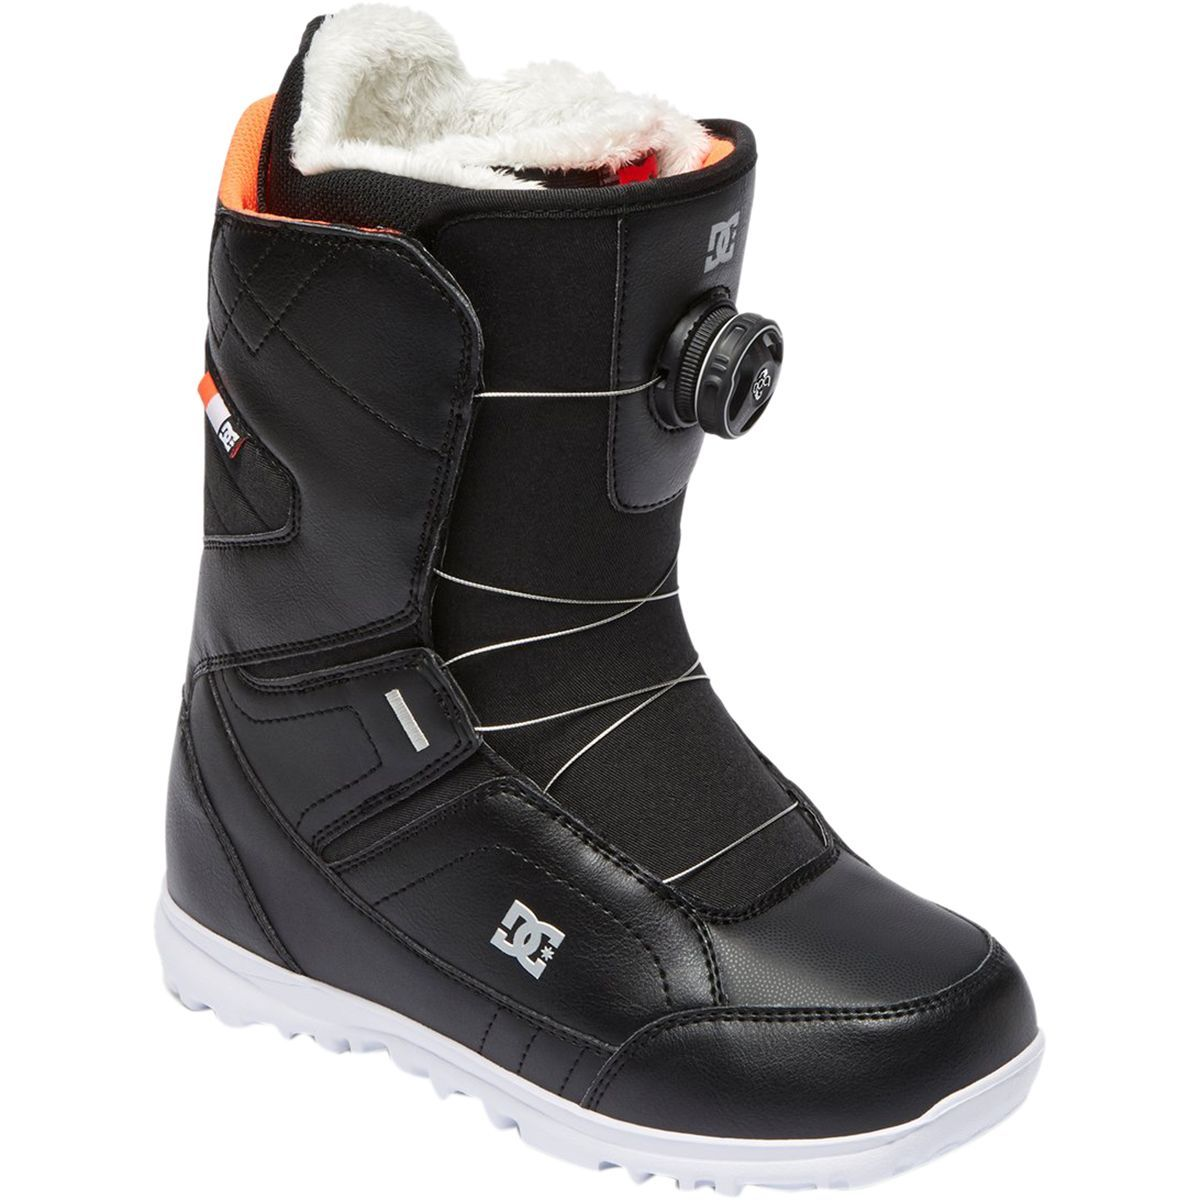 Search Boa Snowboard Boot Women S Boots Snowboarding Style Snowboarding Outfit